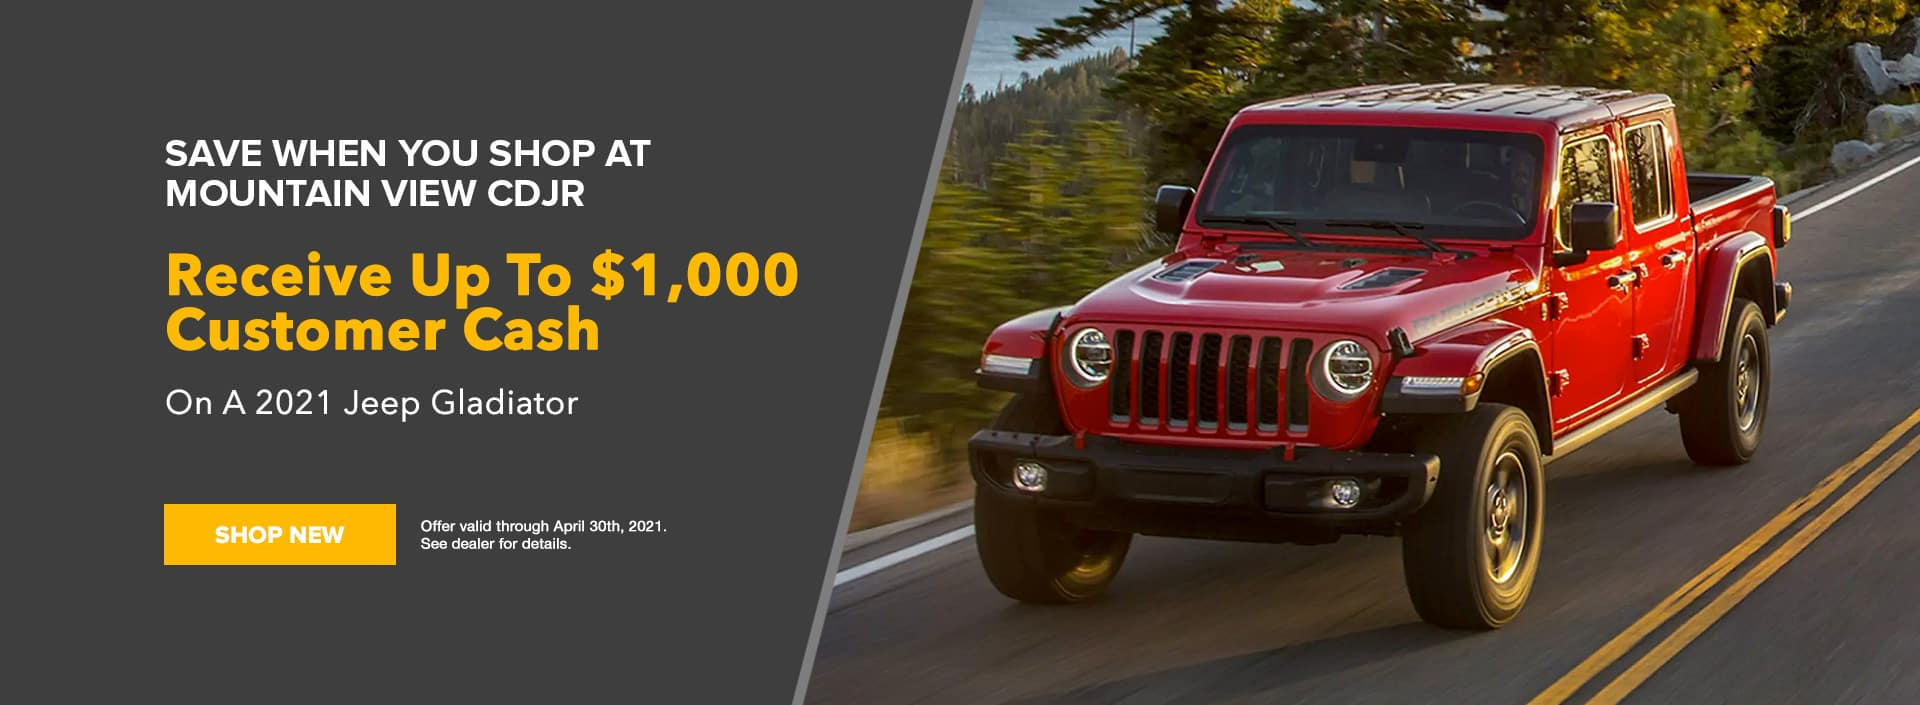 Jeep Gladiator Offer